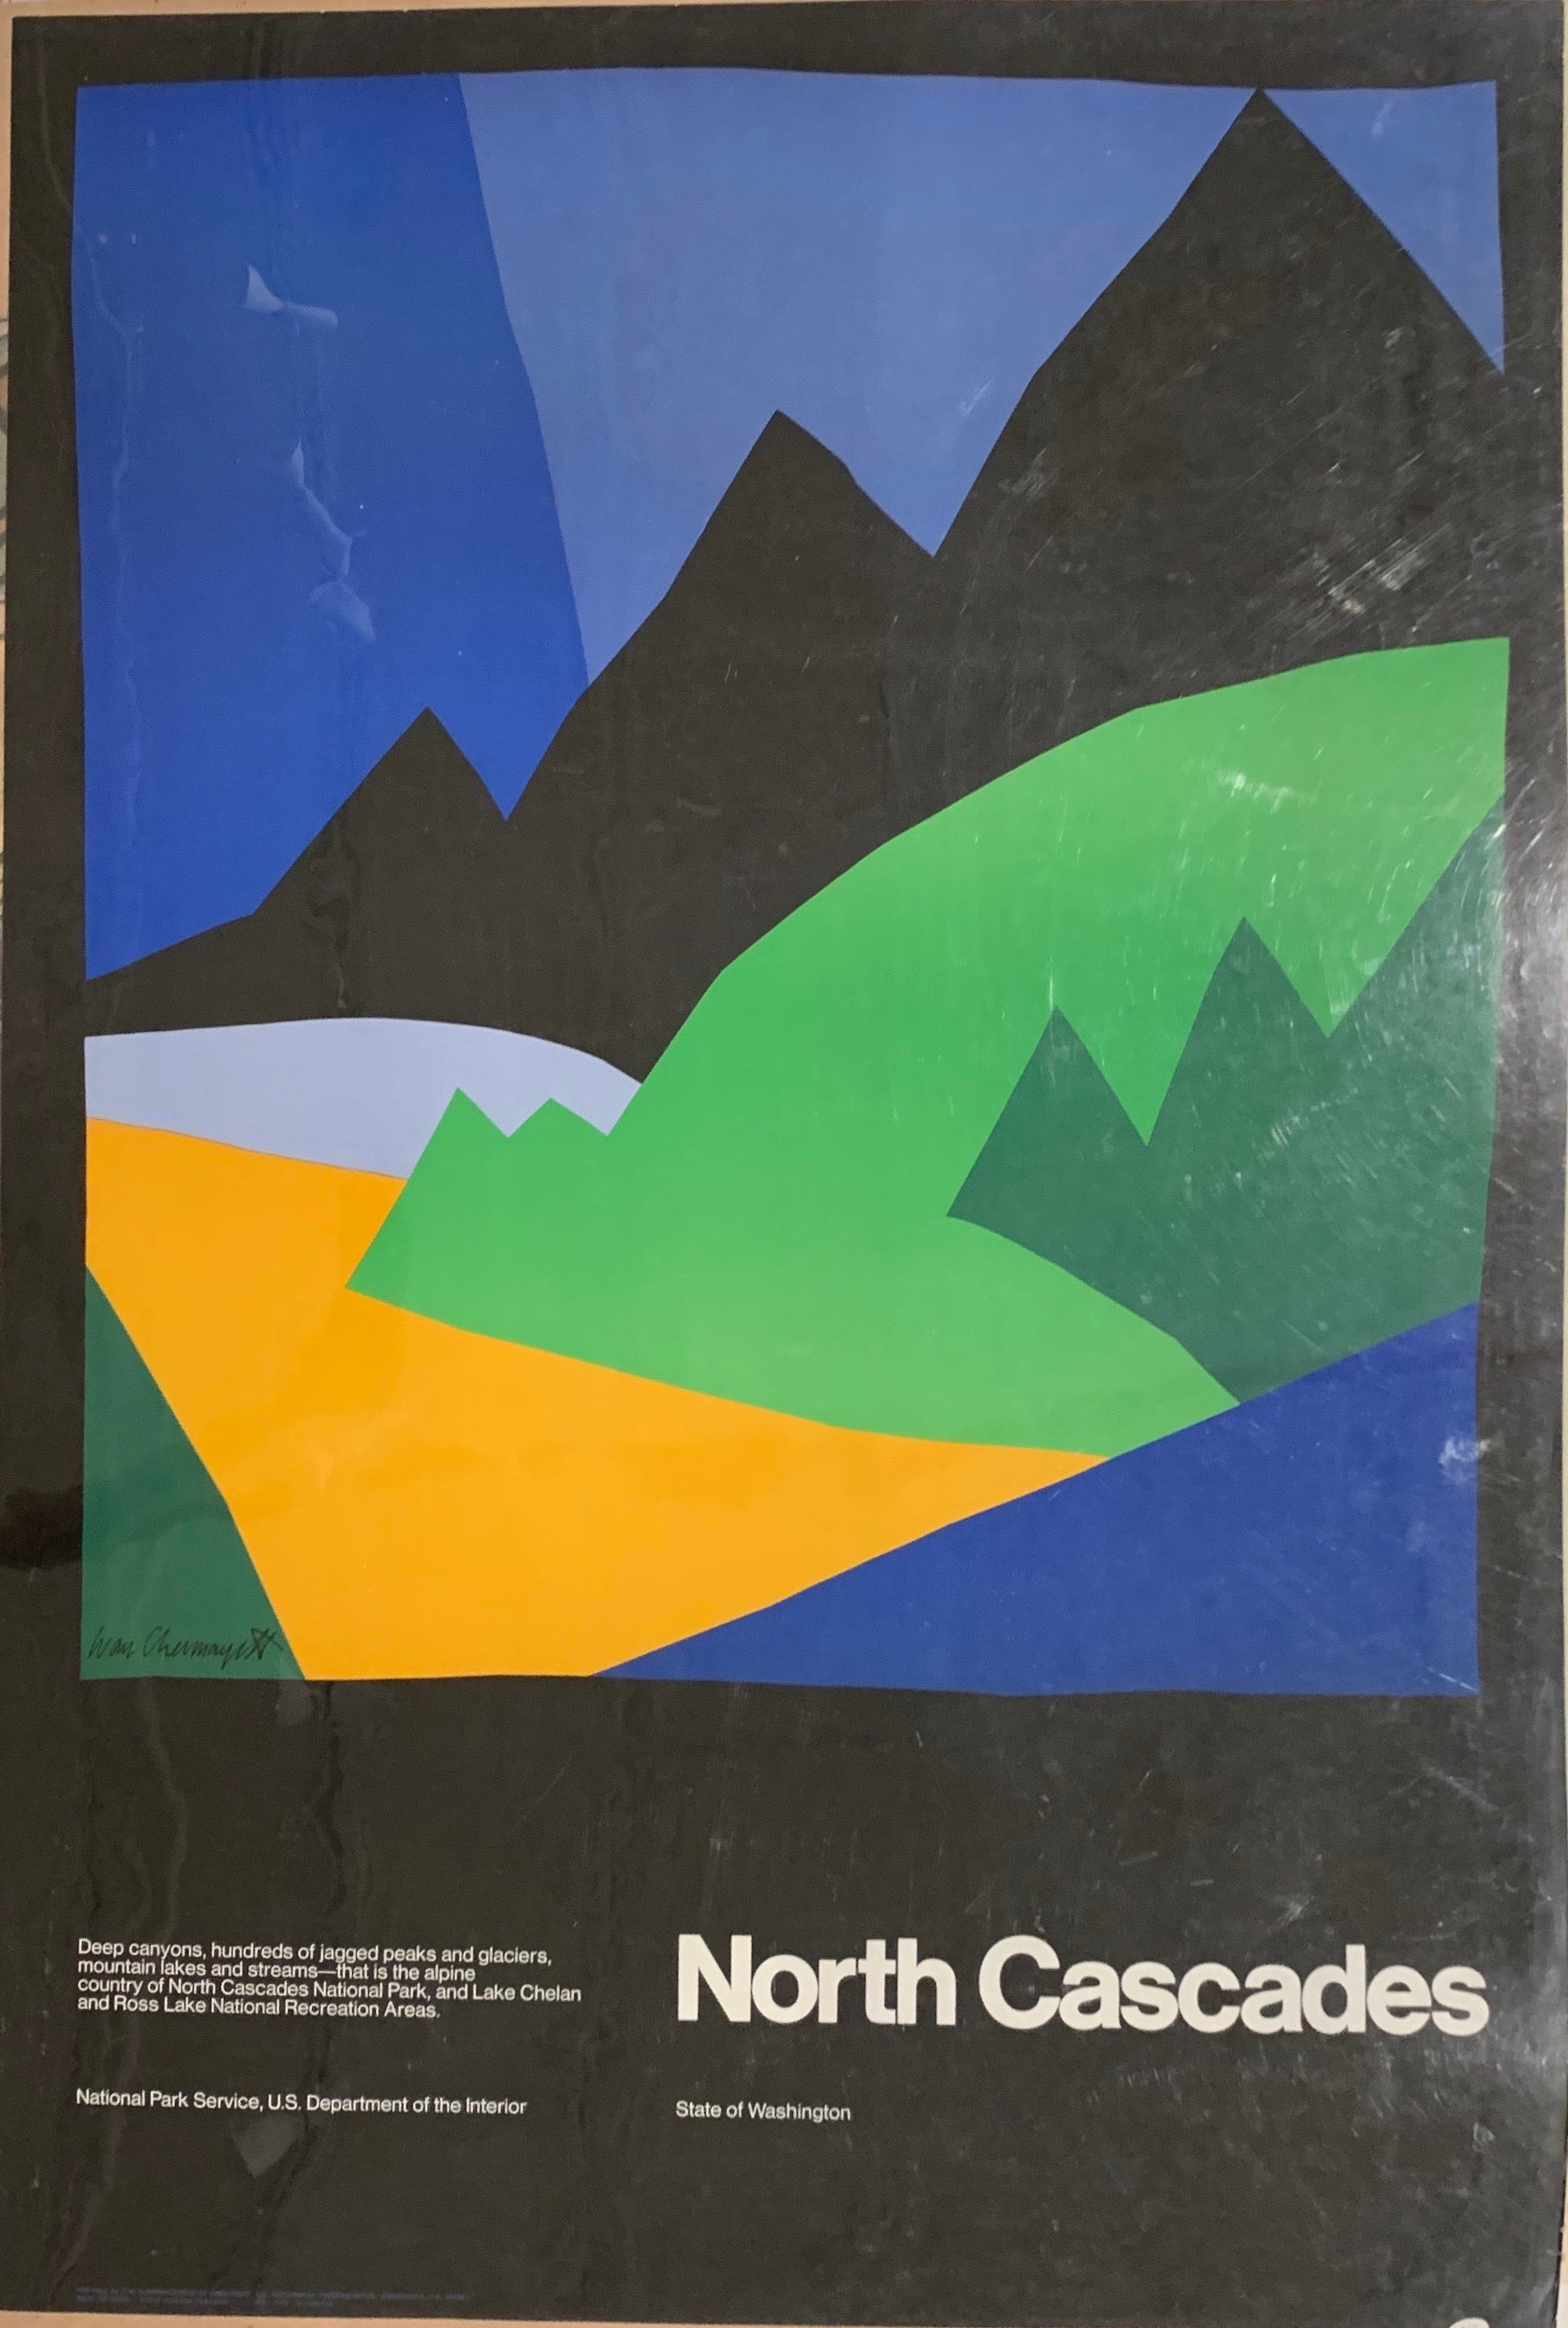 North Cascades State of Washington Poster